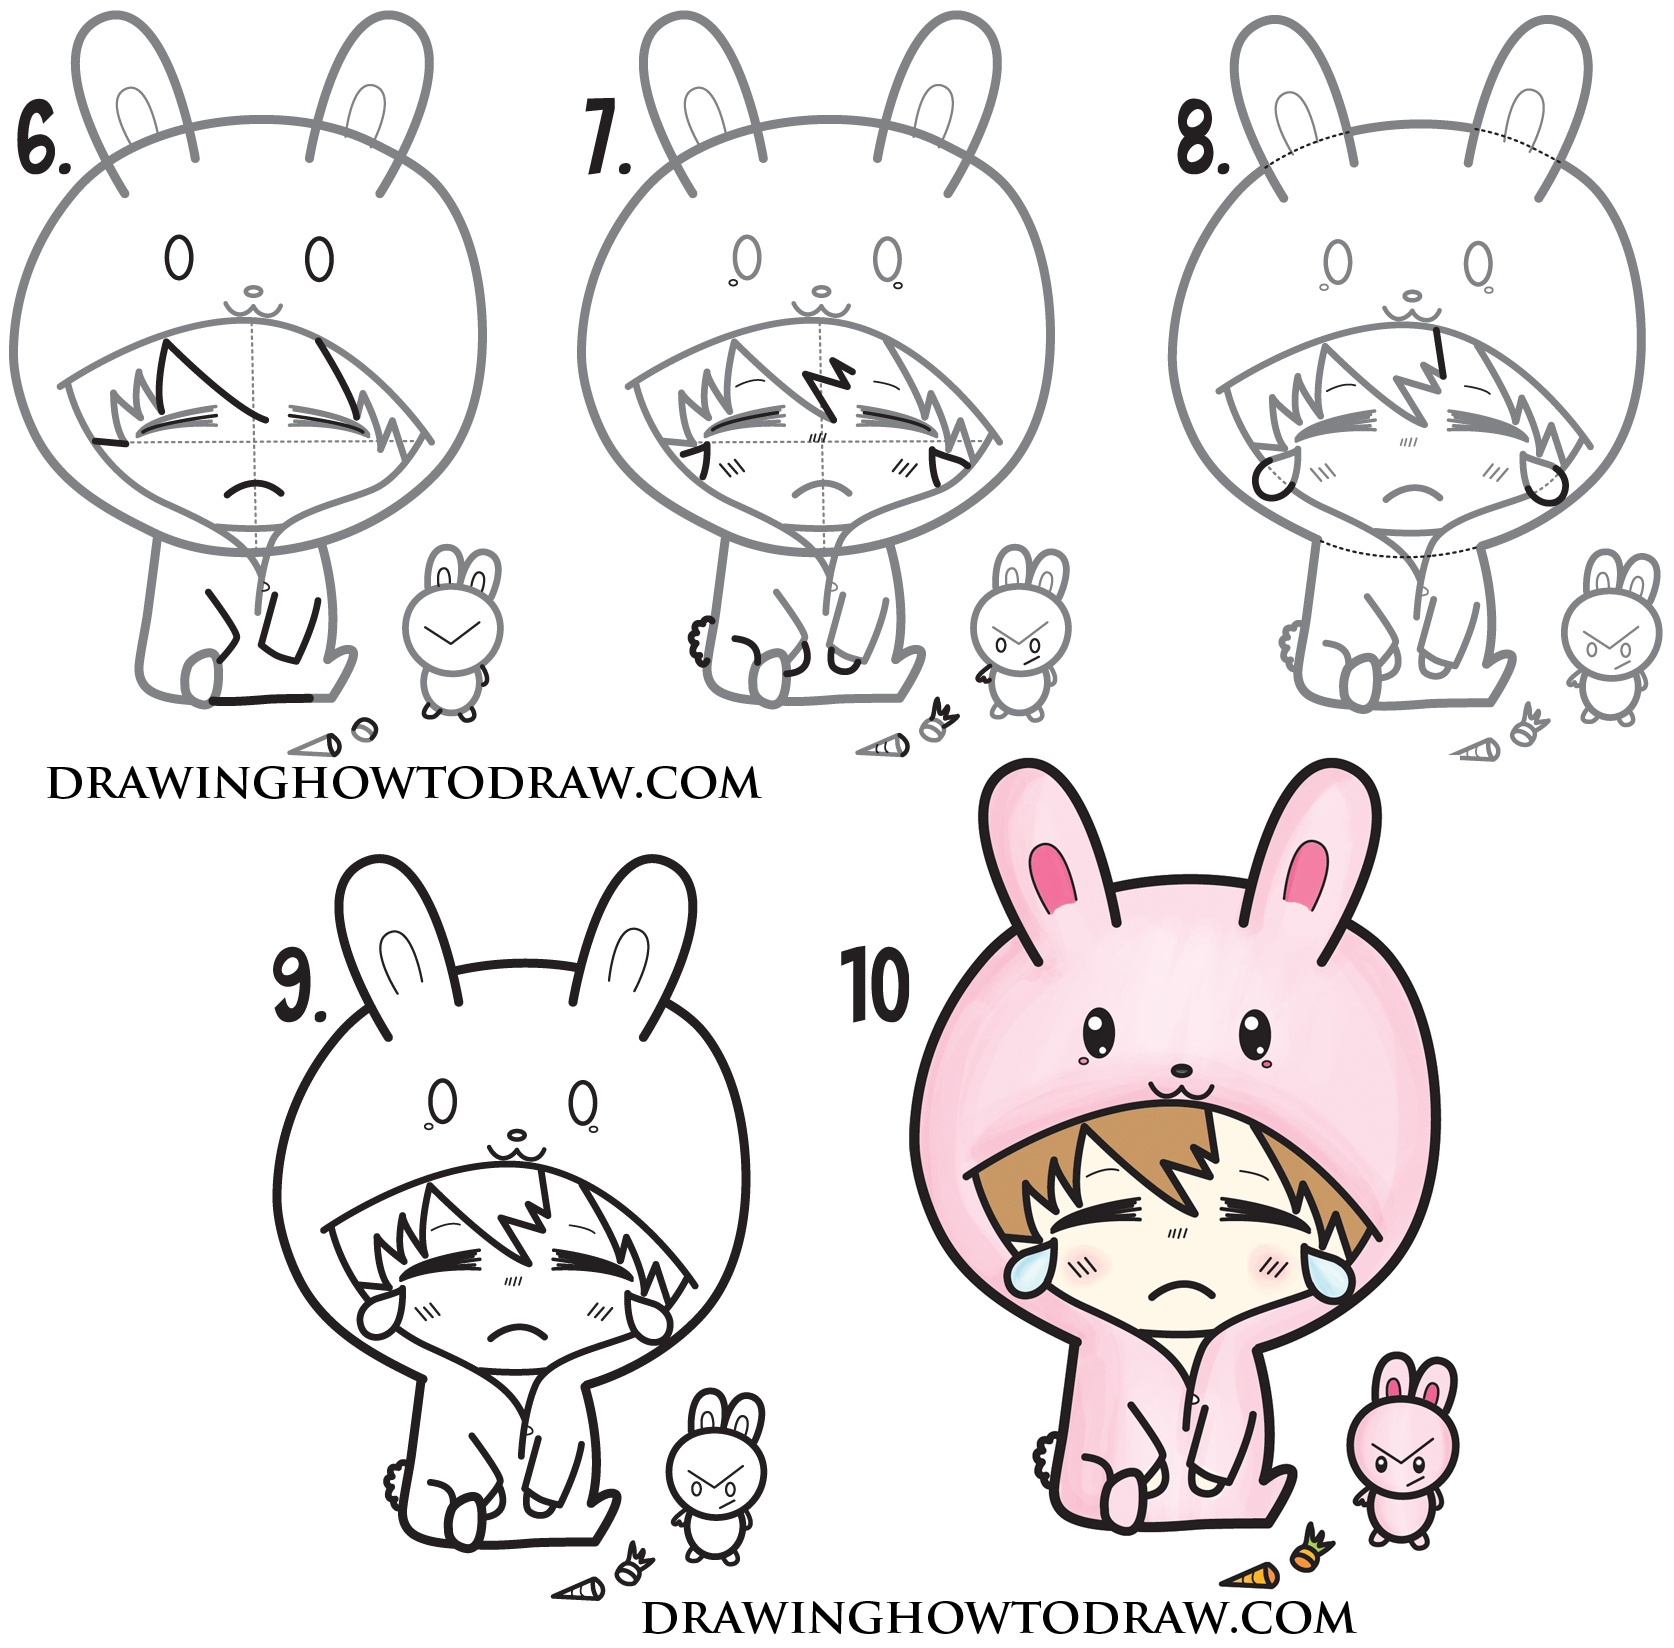 How to Draw a Cute Chibi Character in Bunny Rabbit Onesie Pajamas